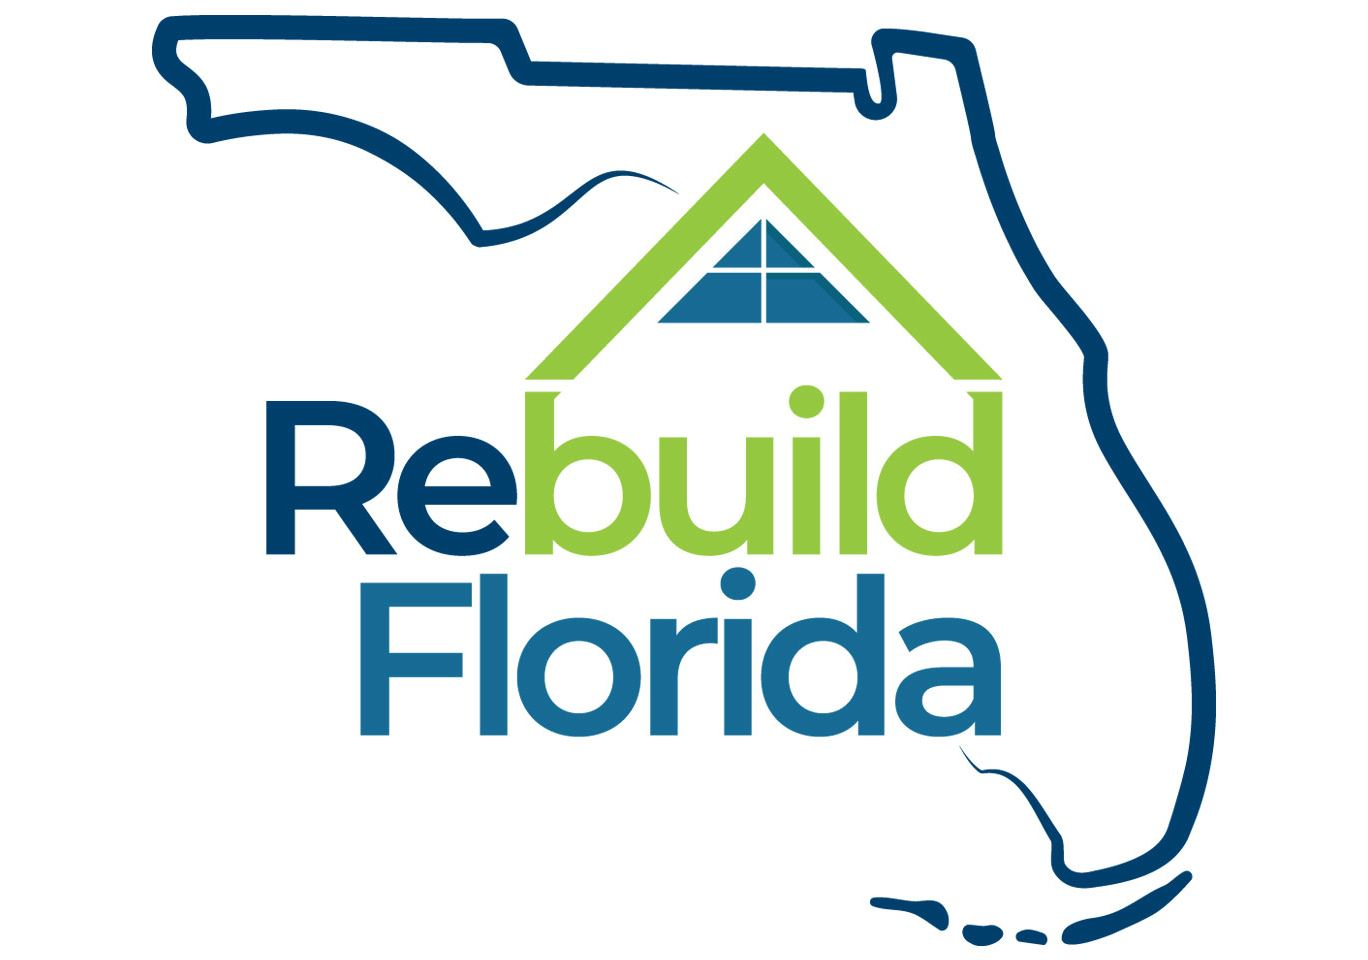 Rebuild Florida Program